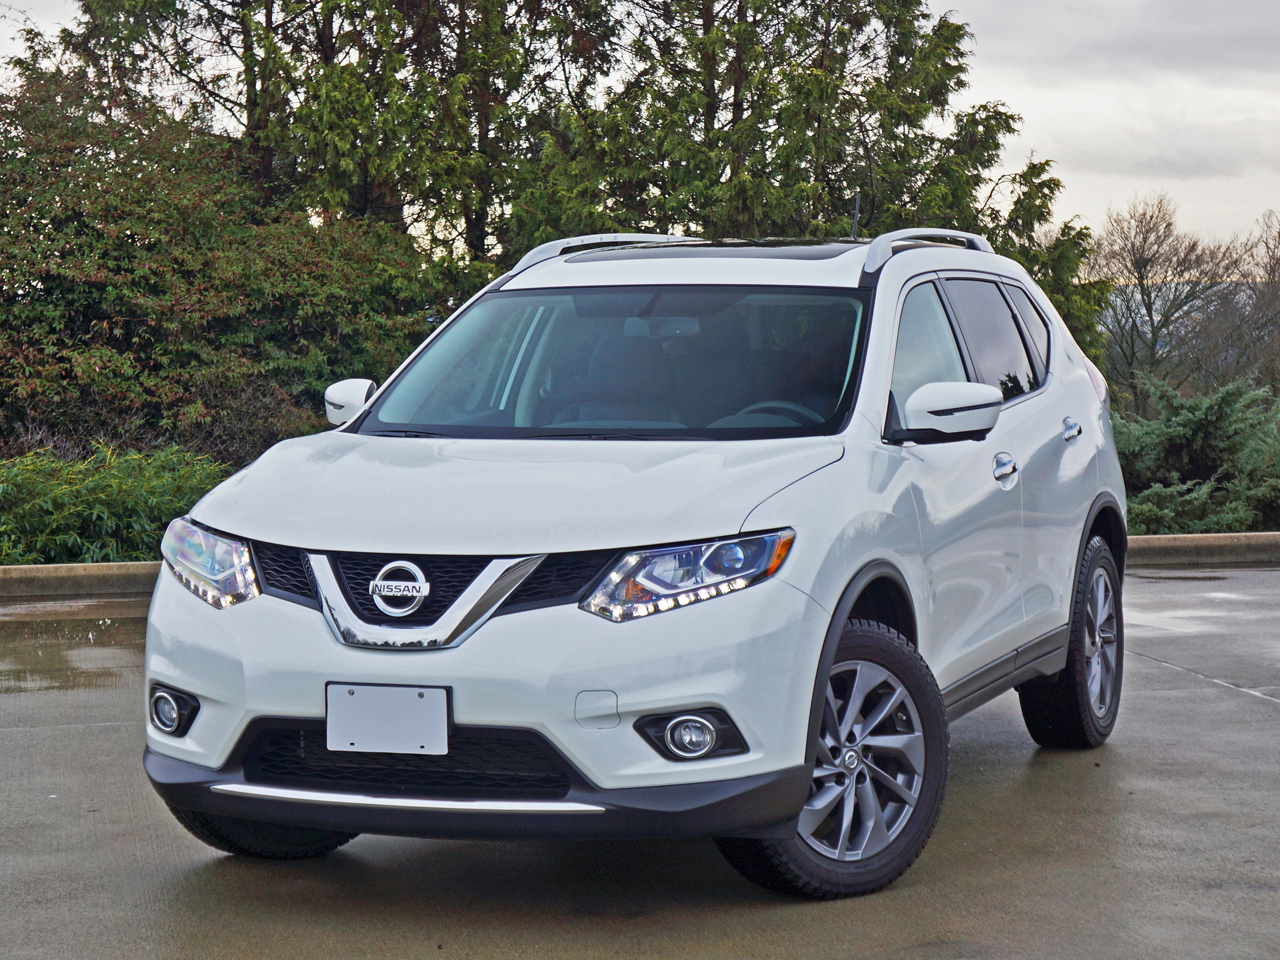 2016 Nissan Rogue Sl Premium Awd Road Test Review